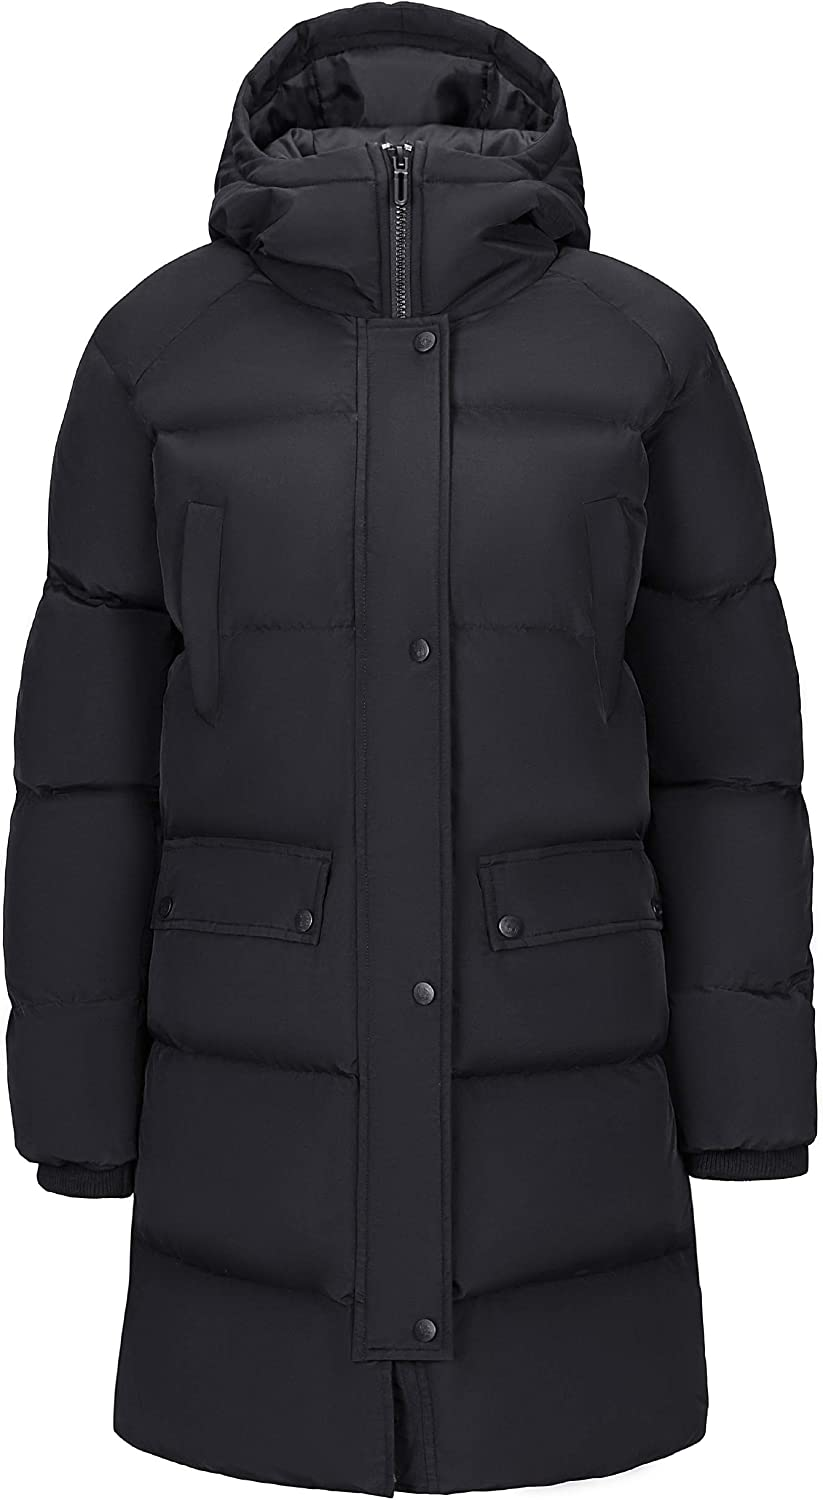 CAMEL Women Puffer Over item handling ☆ Max 80% OFF Long Coat p Windproof Jacket Hooded Thickened